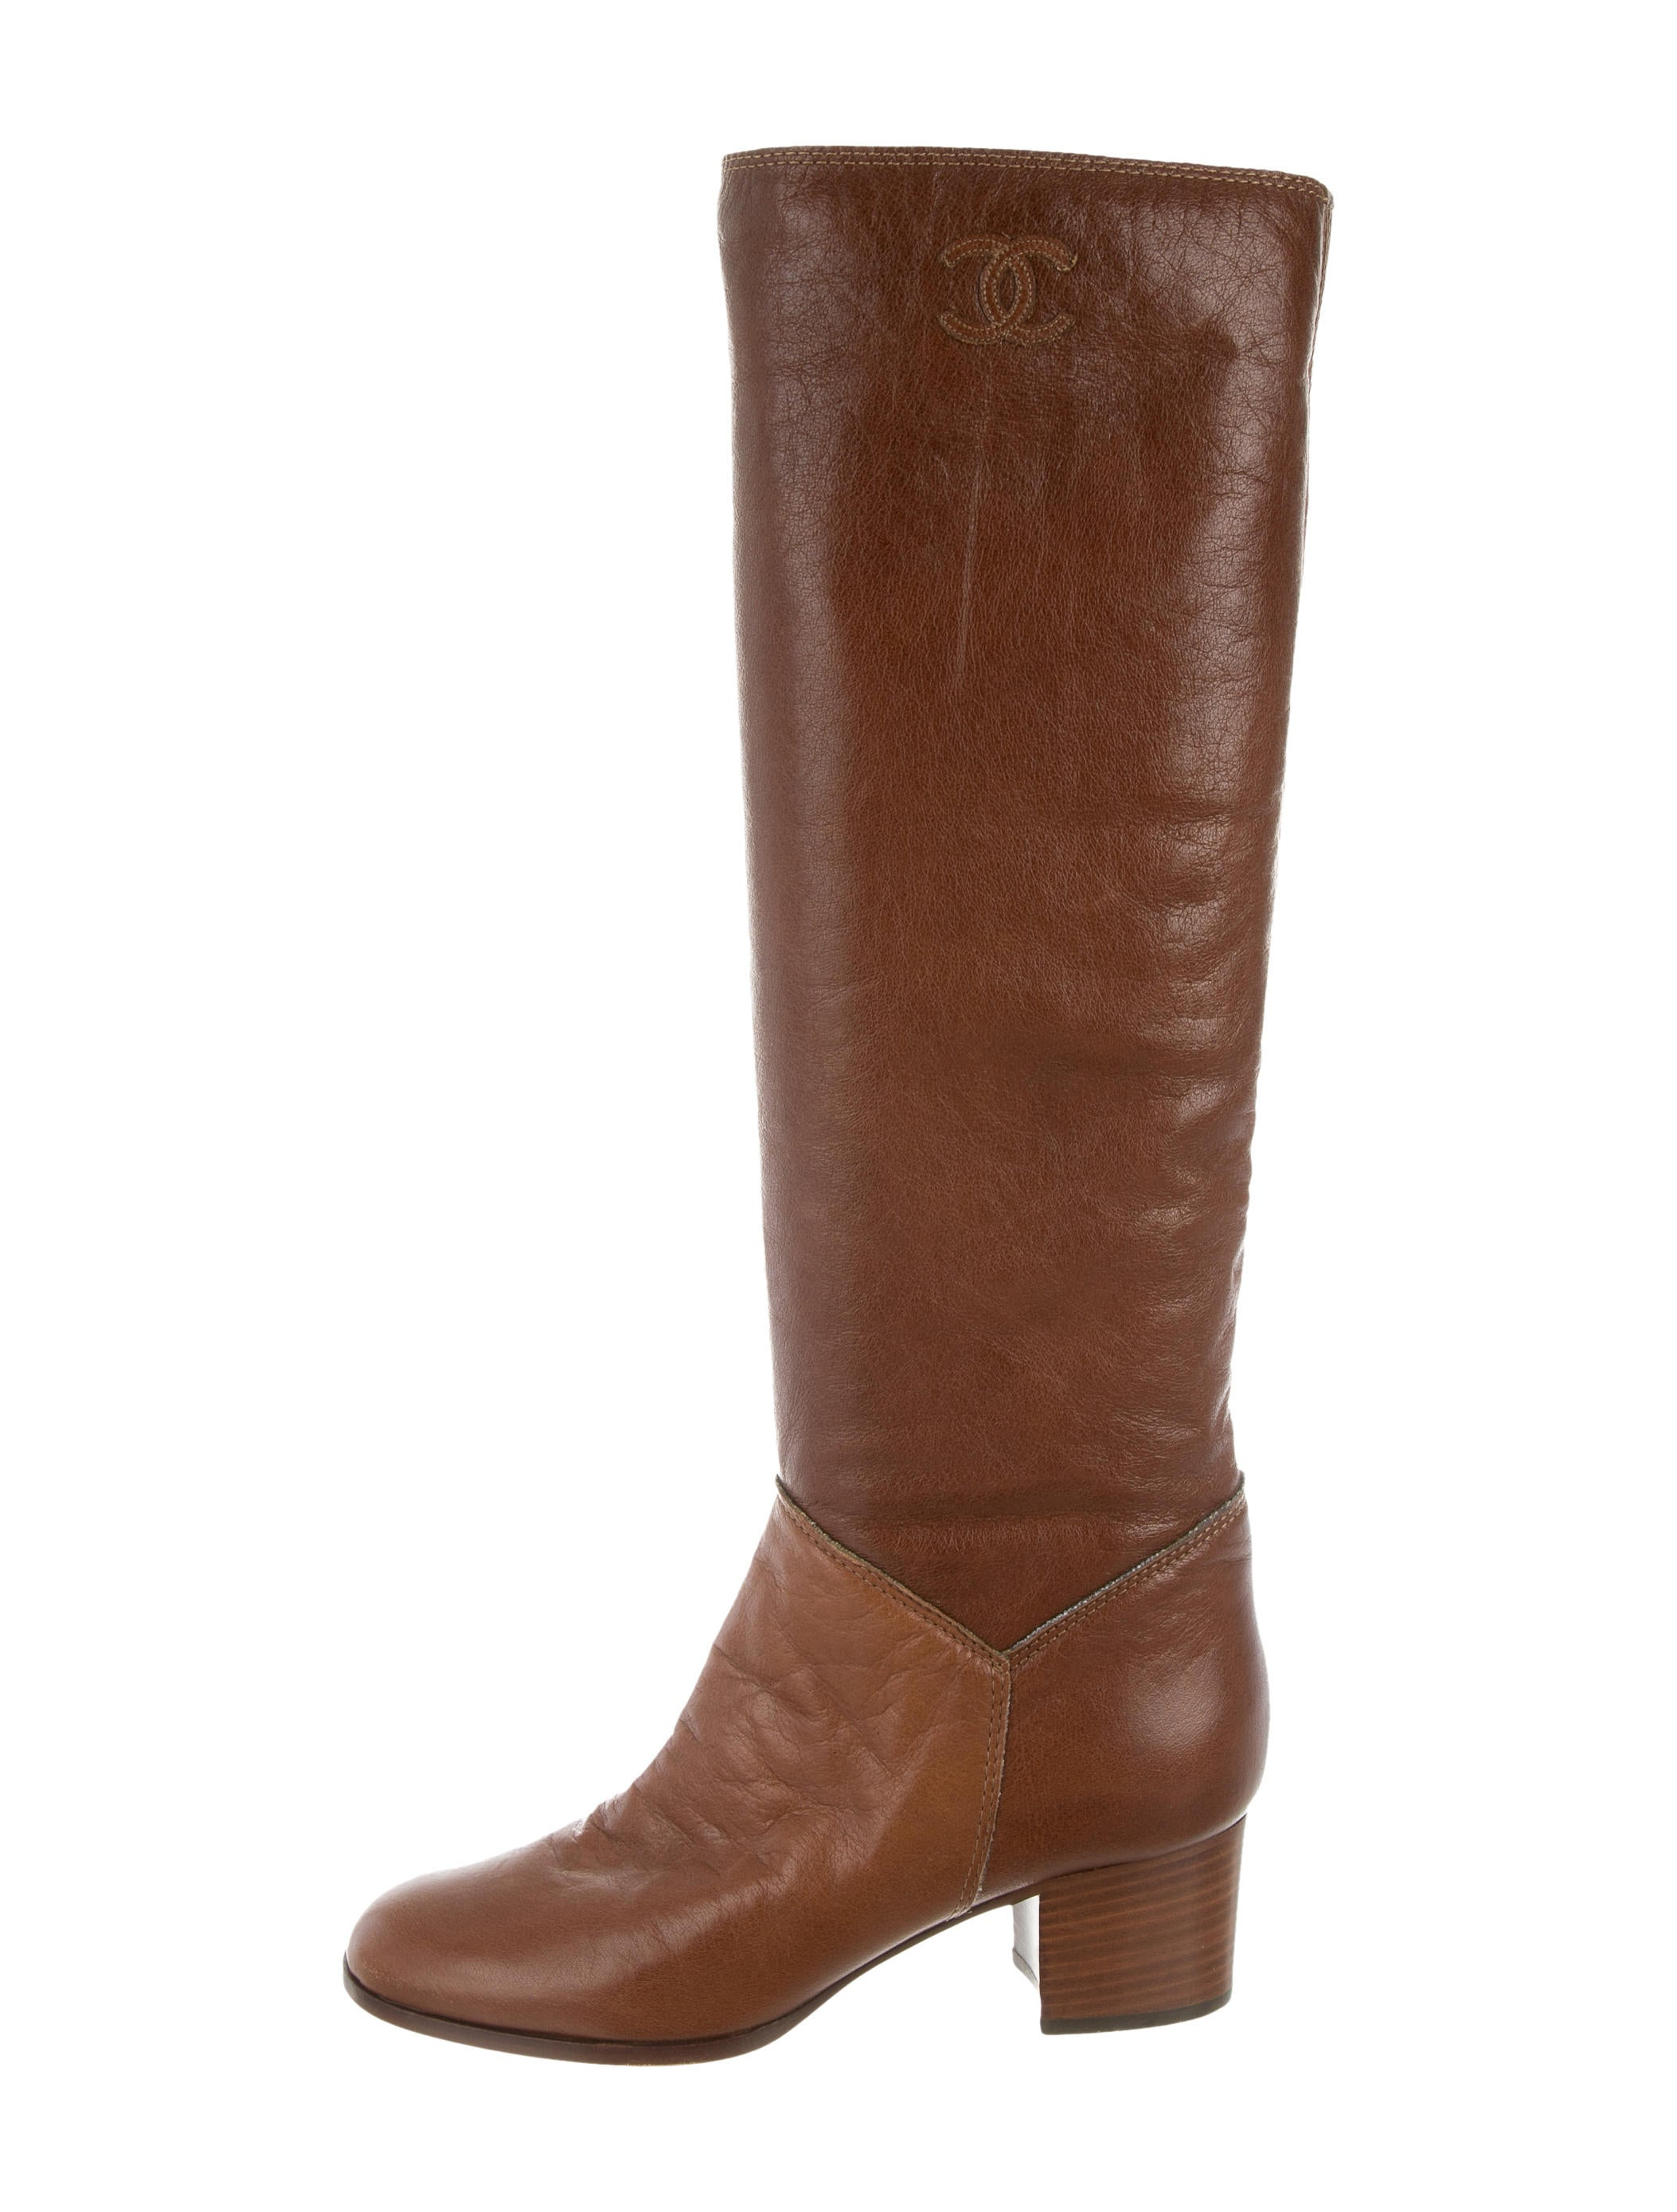 chanel leather knee high boots shoes cha146557 the